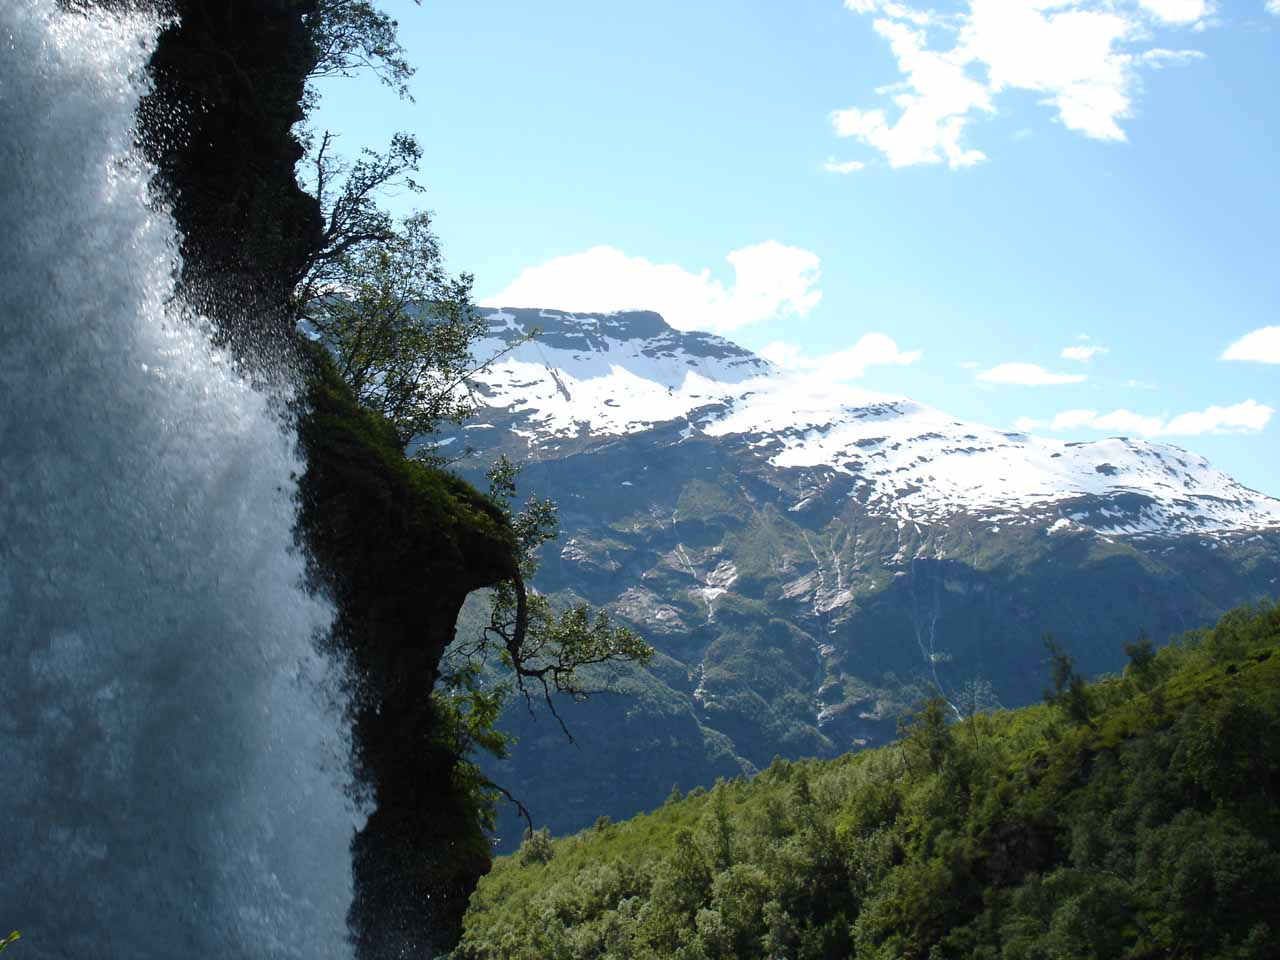 Looking out towards snowy-capped mountains from behind Storsæterfossen. Indeed, this was one of those waterfalls that we could get behind